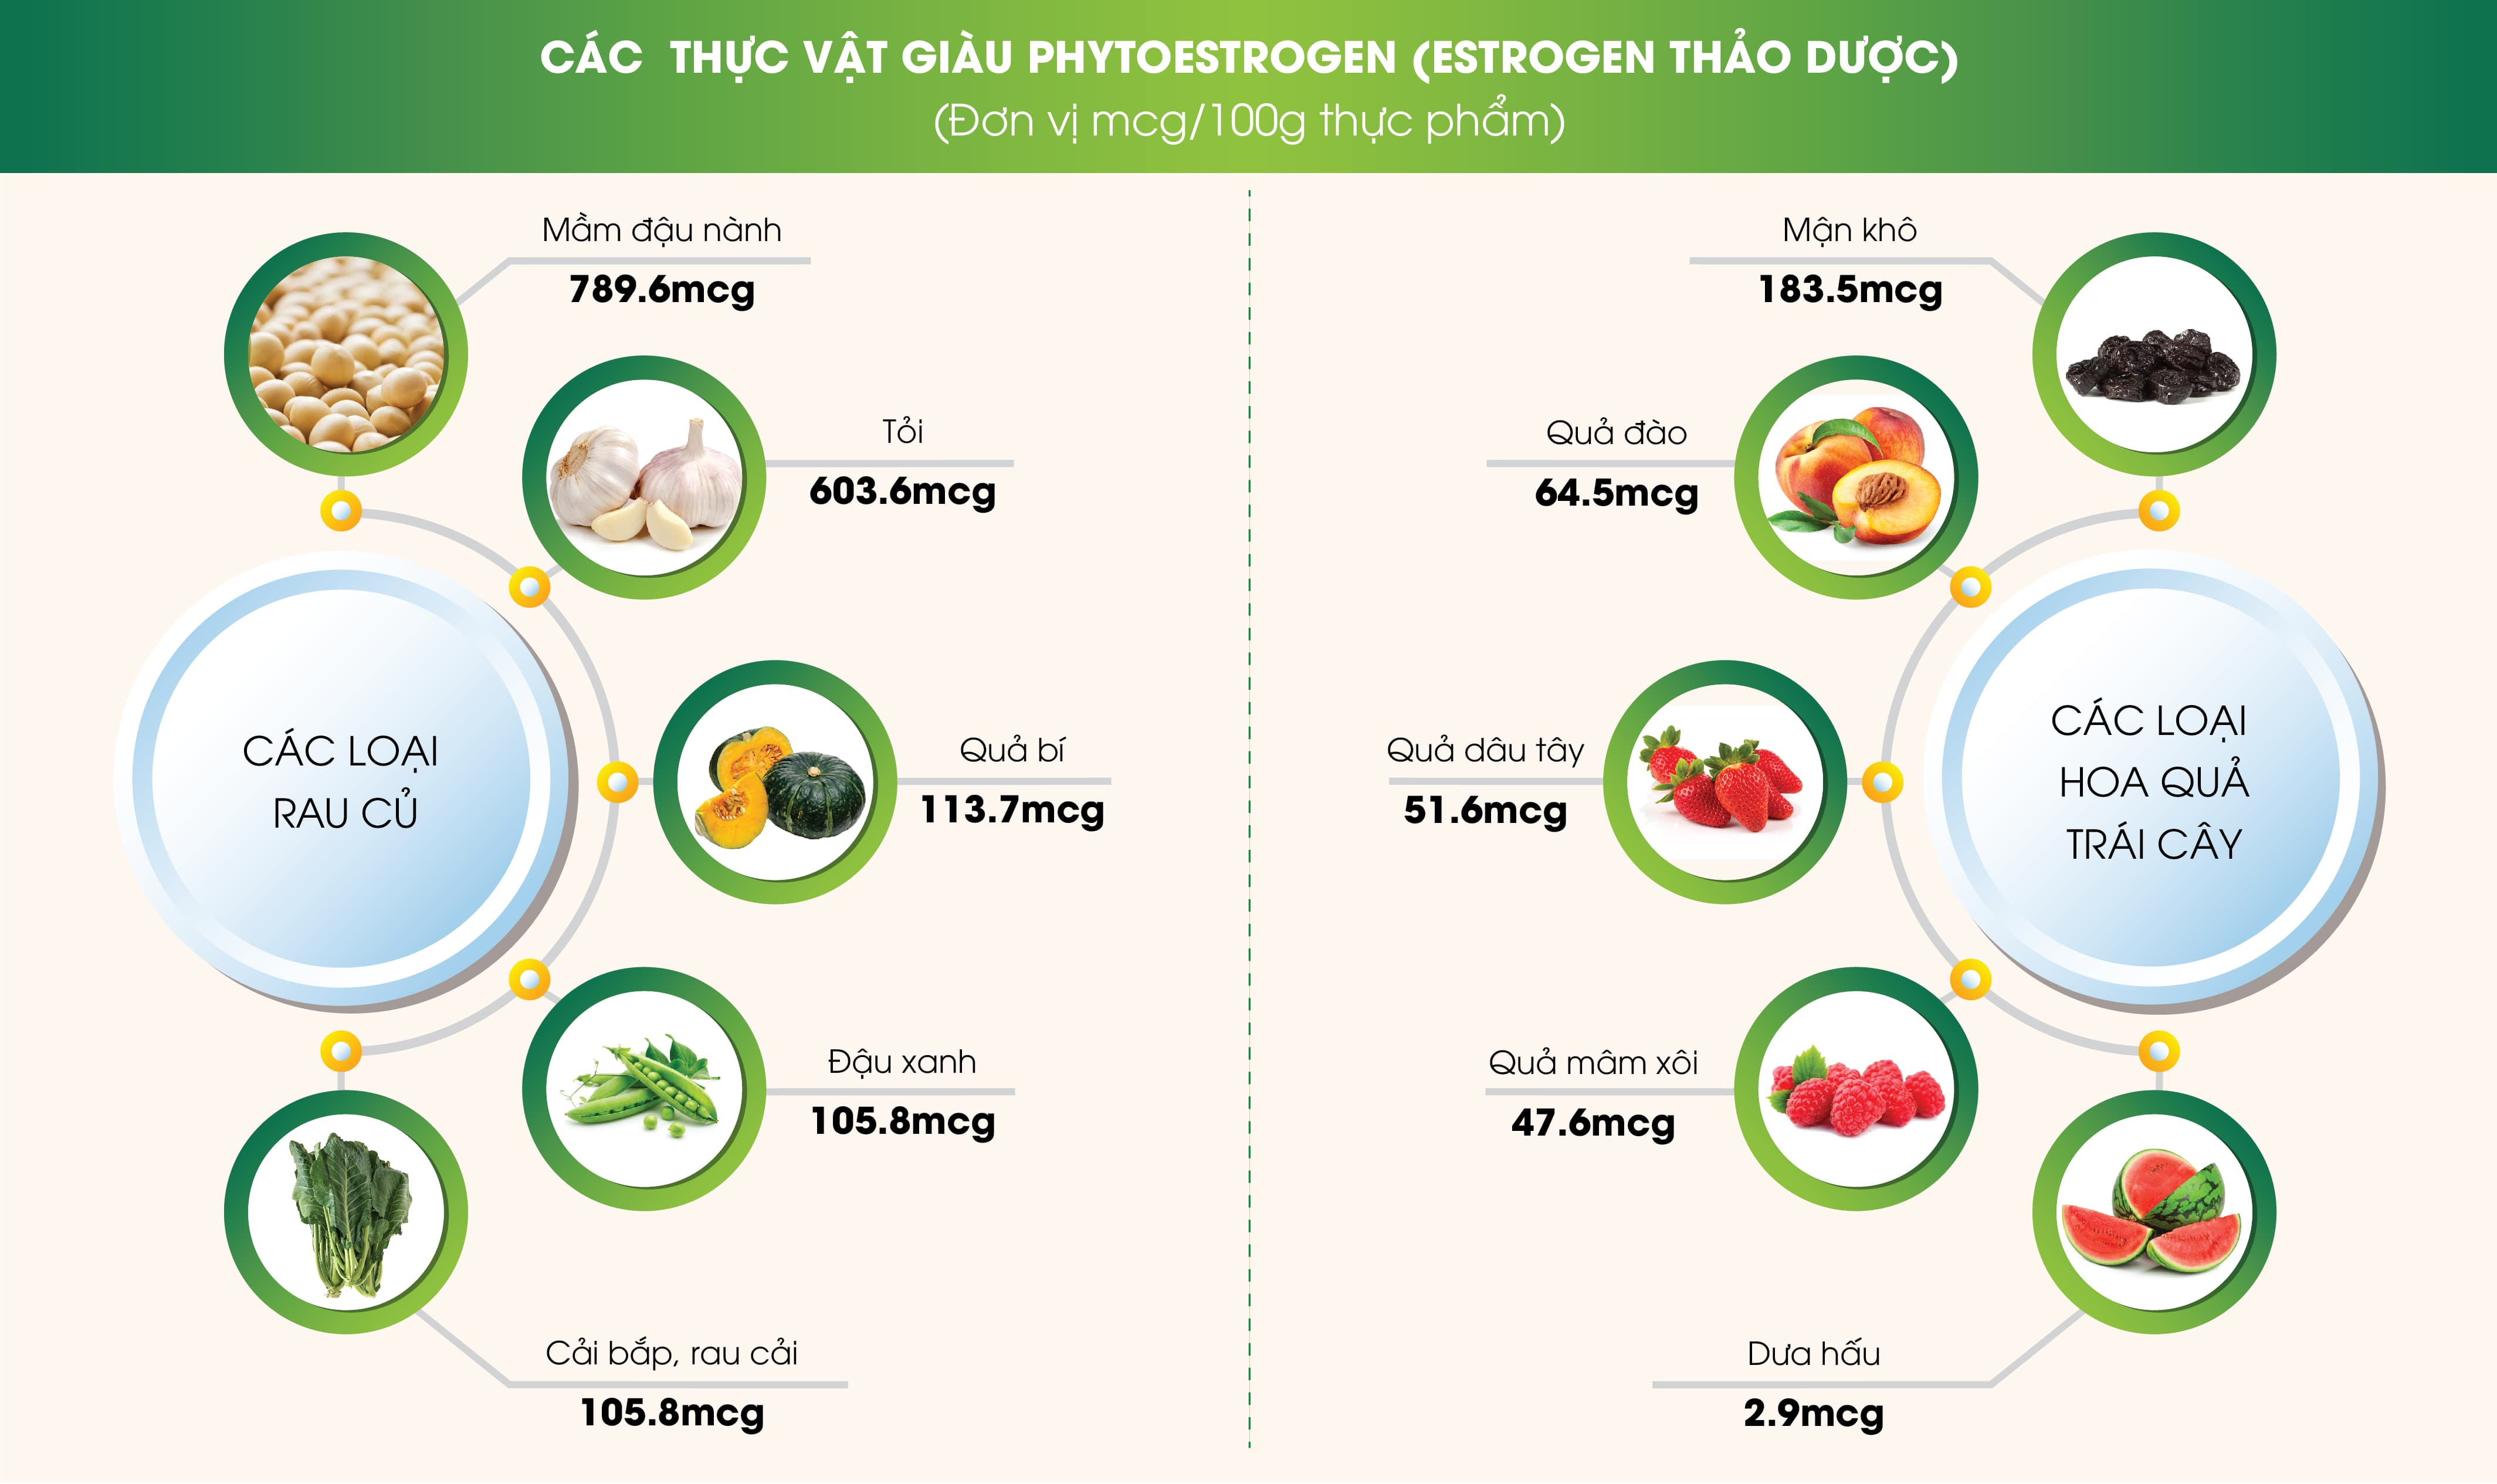 cac-thuc-vat-giau-phytoestrogen